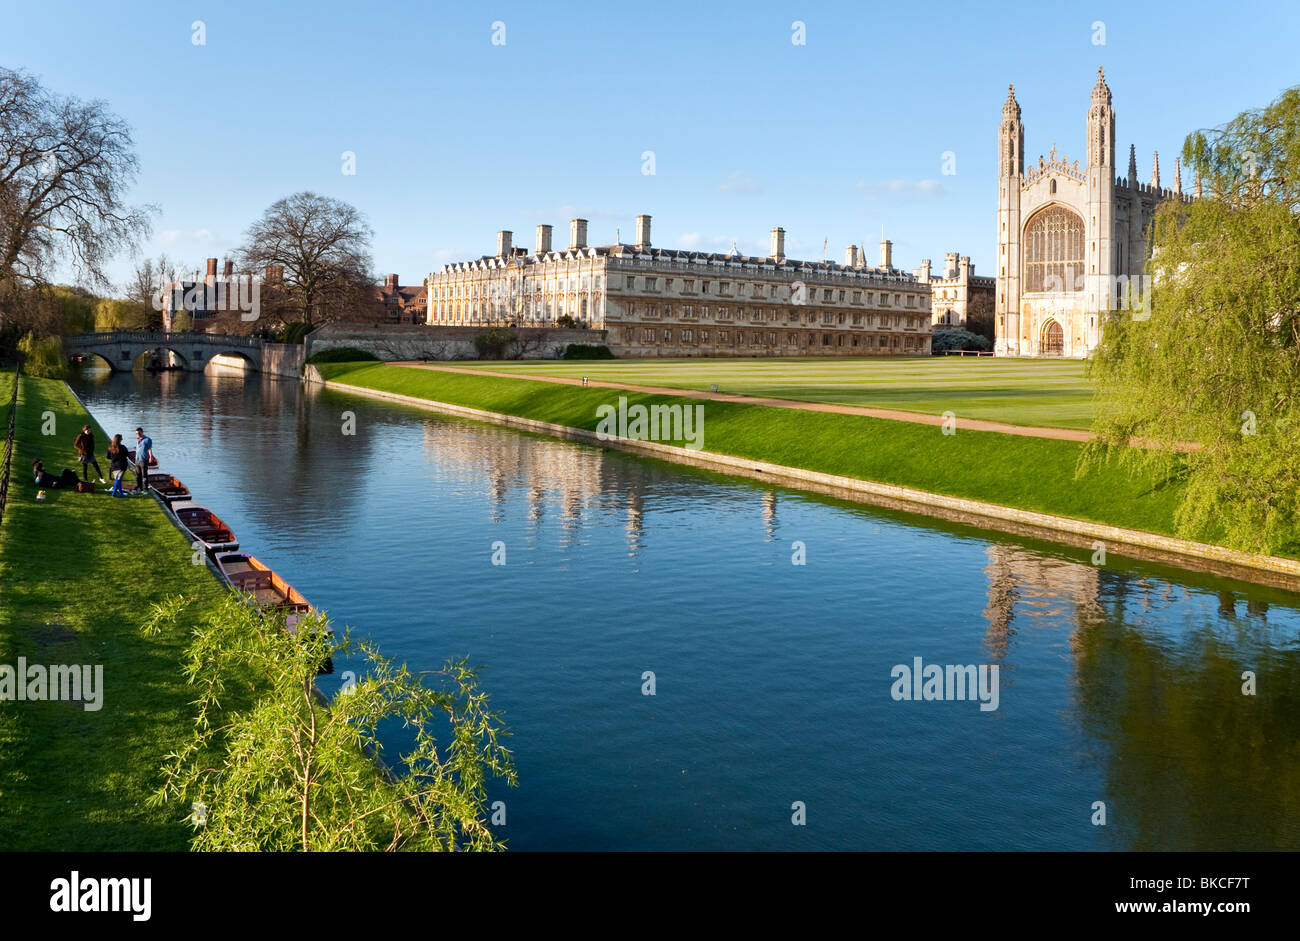 The River Cam with Clare college and Kings' College Cambridge in the shot - Stock Image